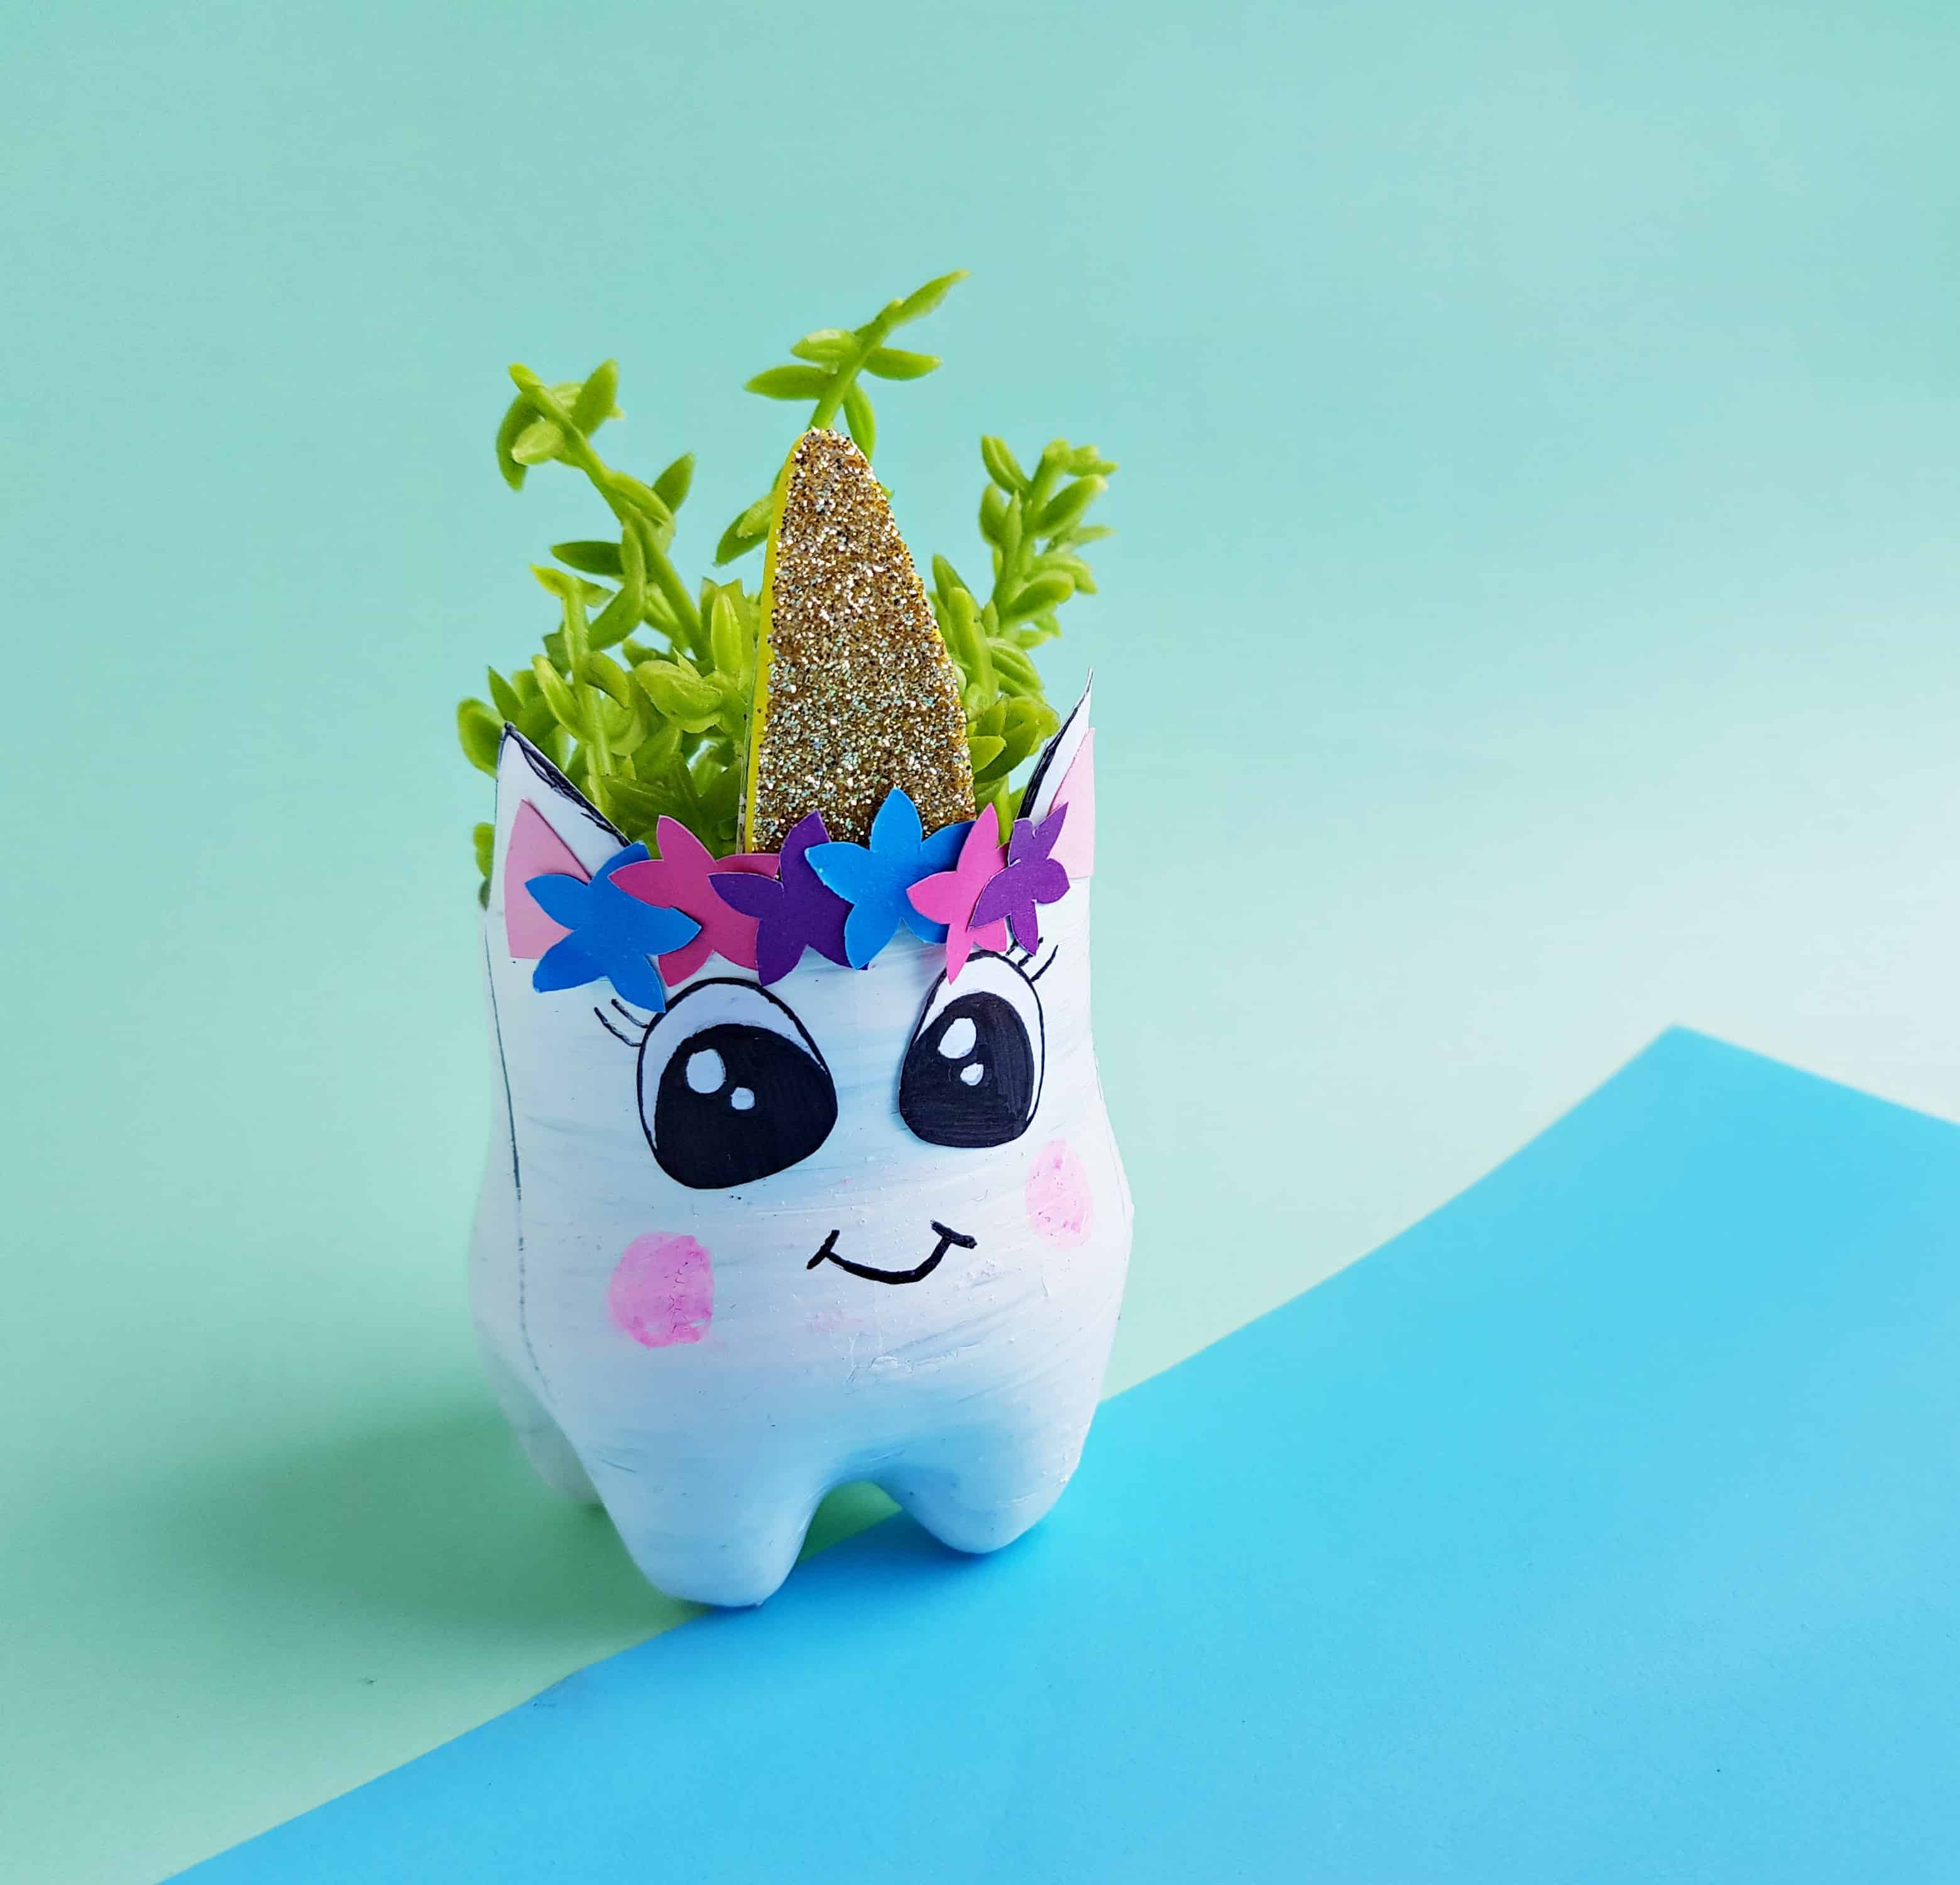 DIY Planter Ideas Bottle Recycling Unicorn Planter